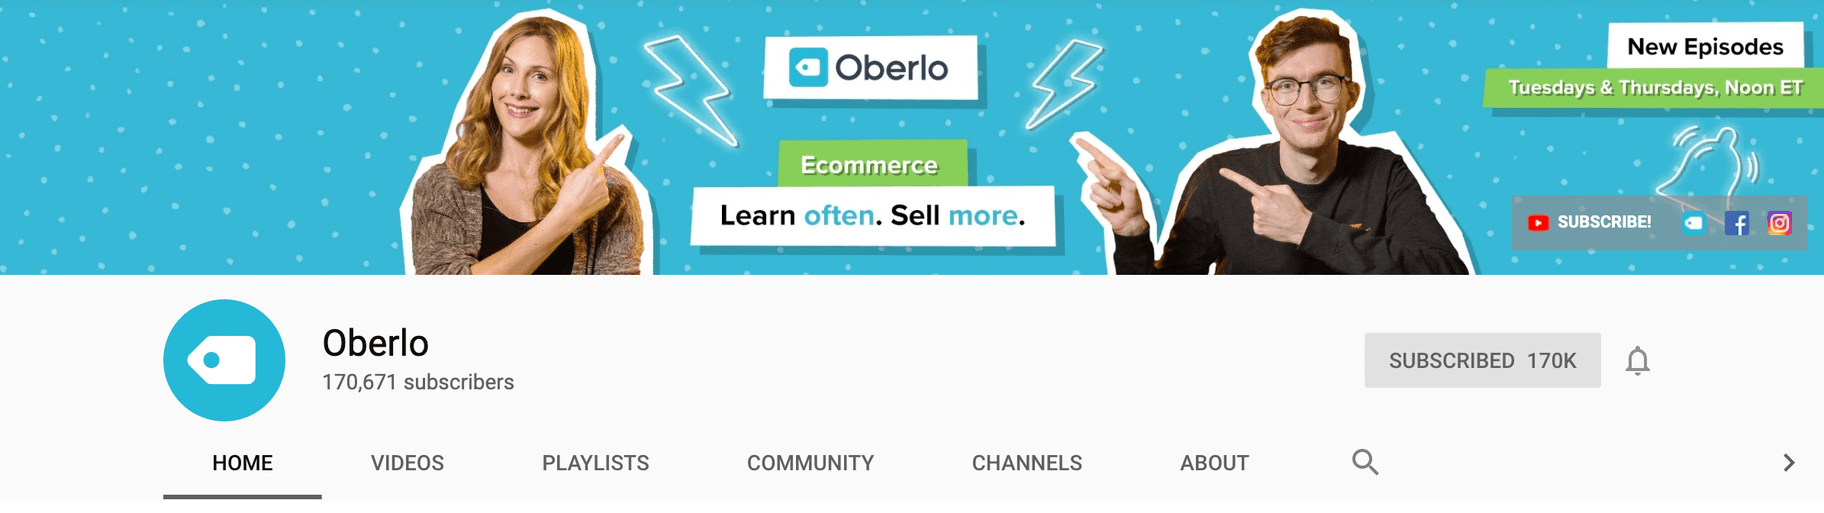 Oberlo YouTube Profile Pic